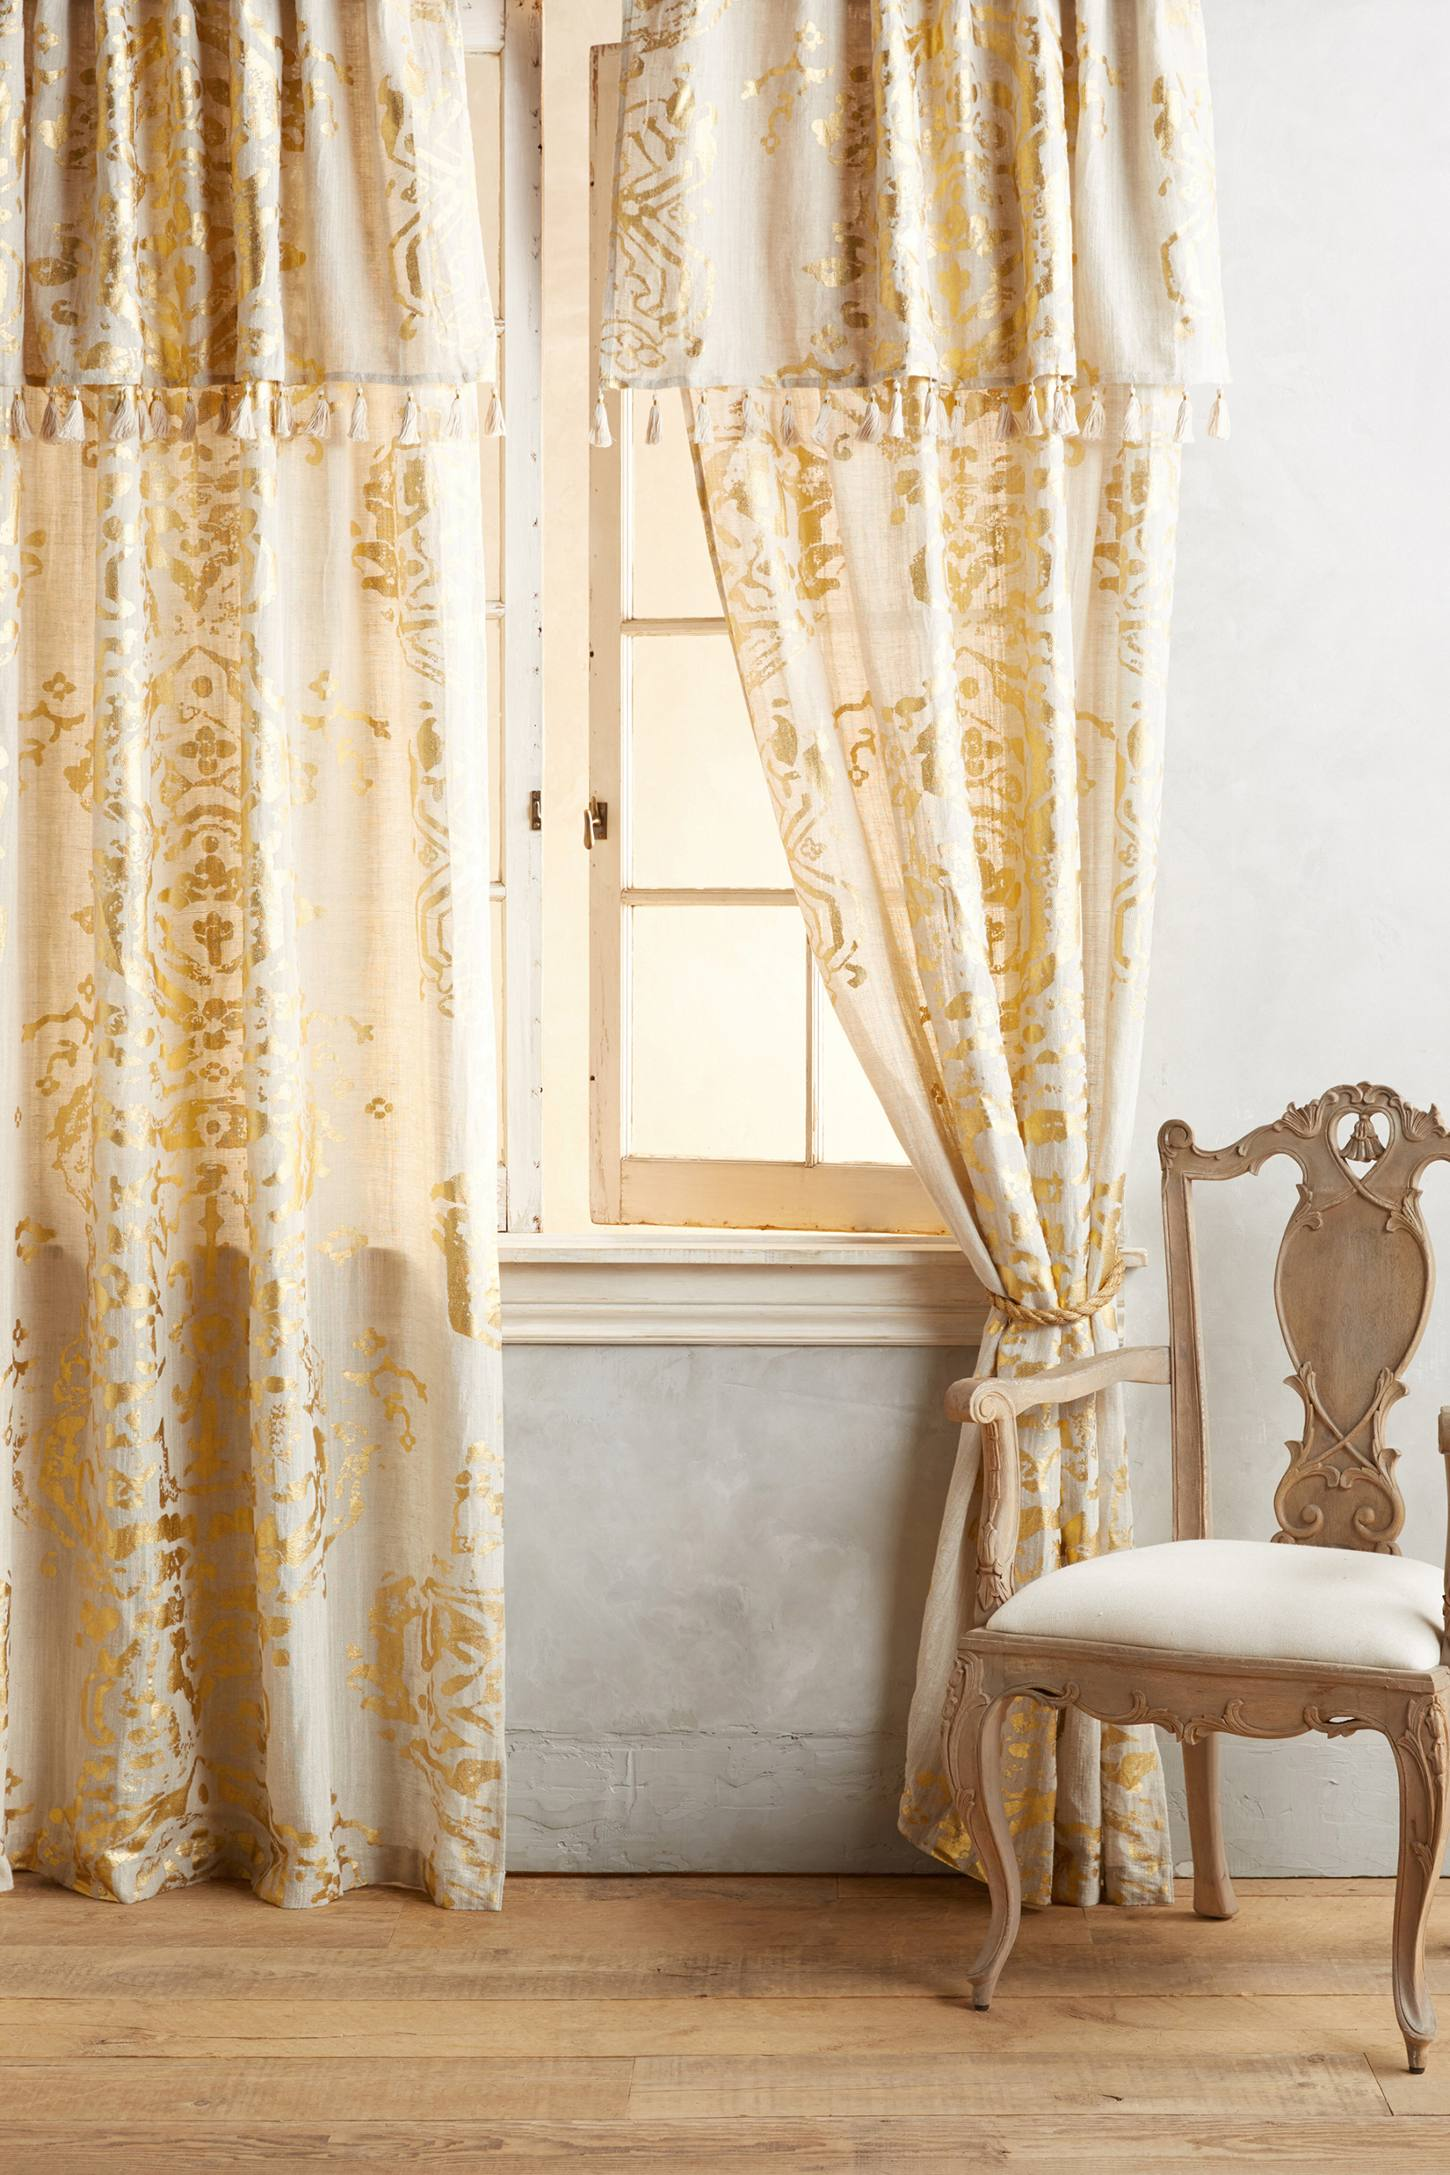 Slide View: 1: Gold Foil Curtain